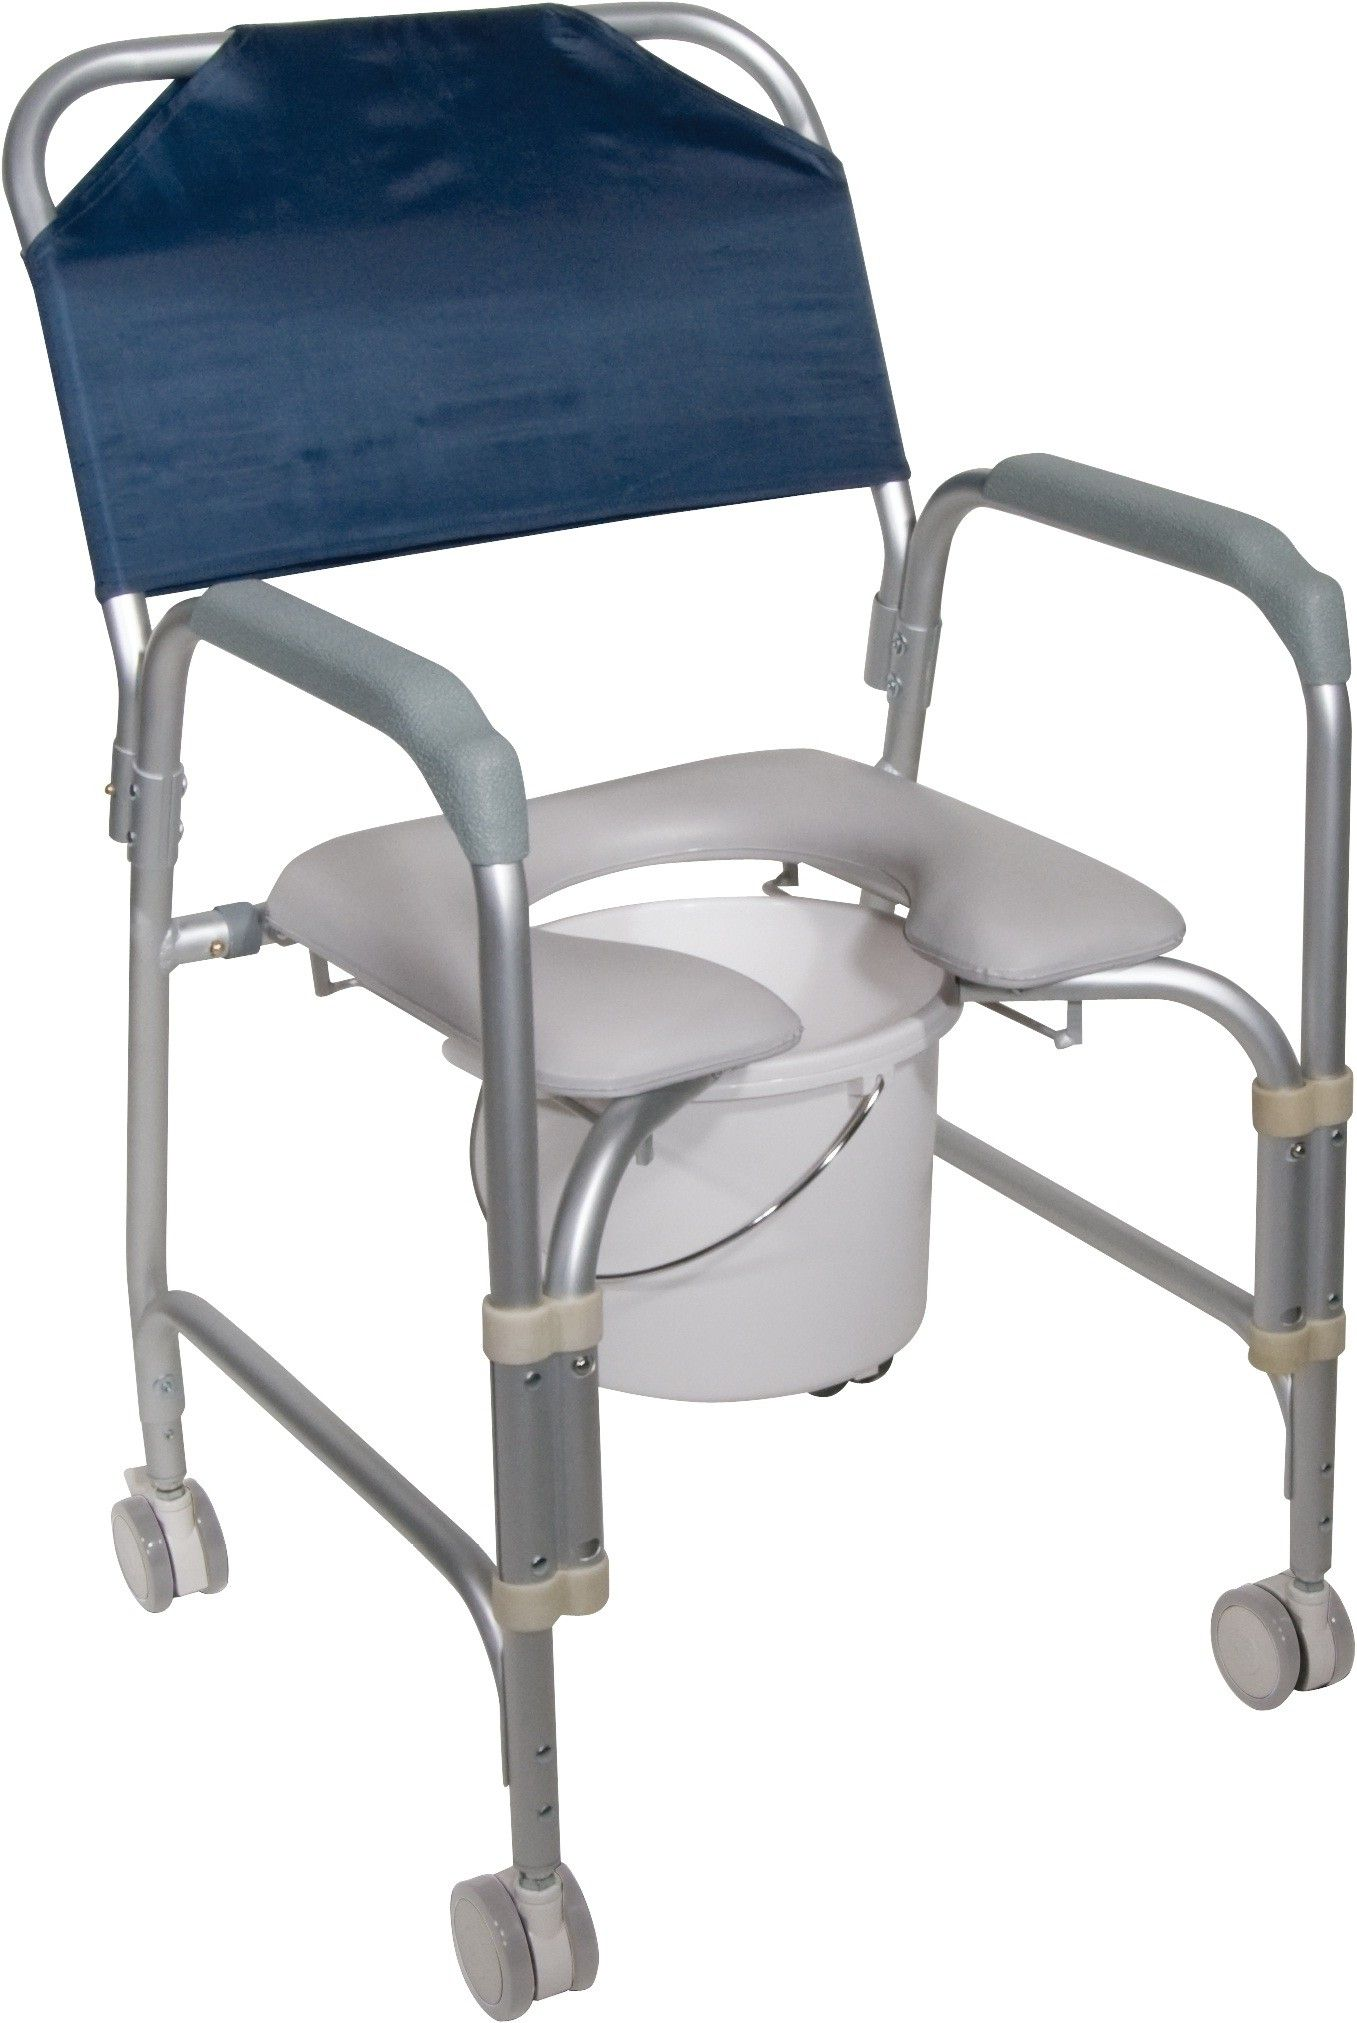 This lightweight portable shower chair commode with